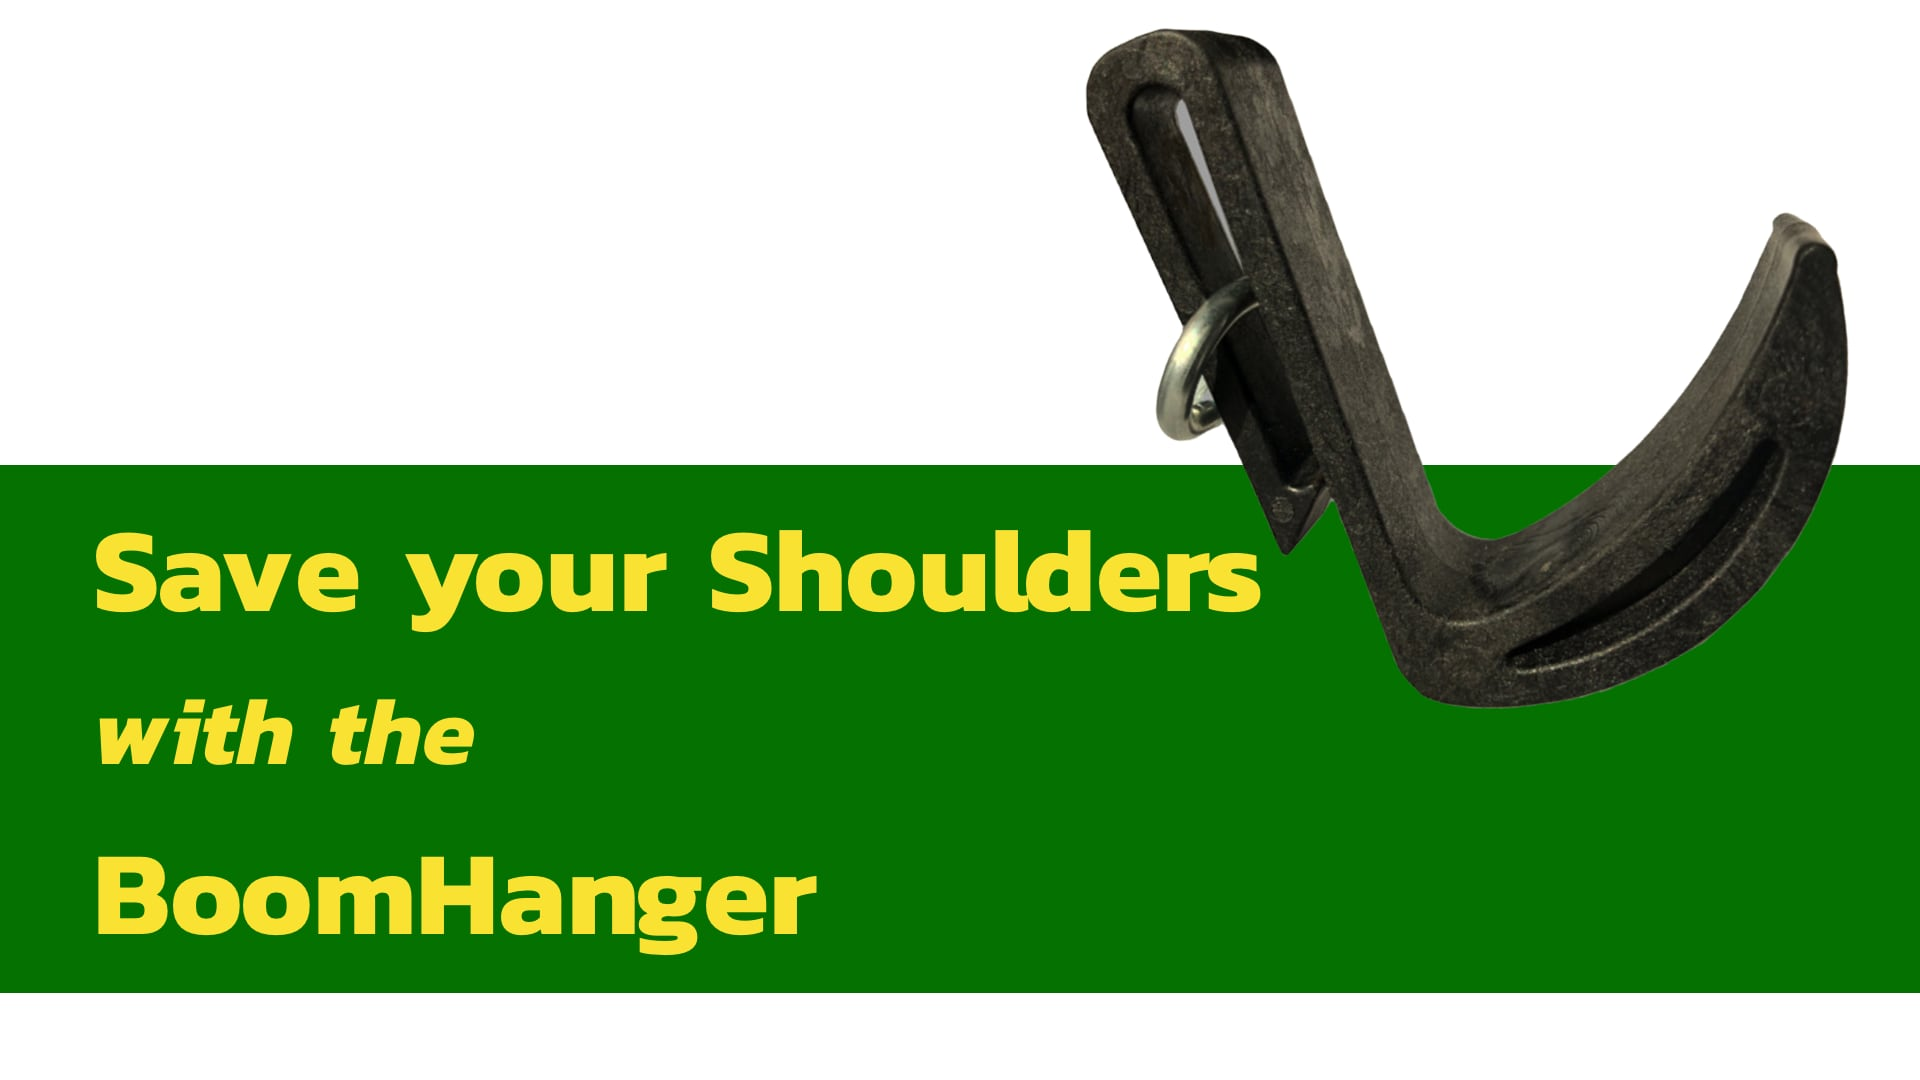 The Boomhanger is a great mobile resting option for your shoulders when booming and mixing at the same time!